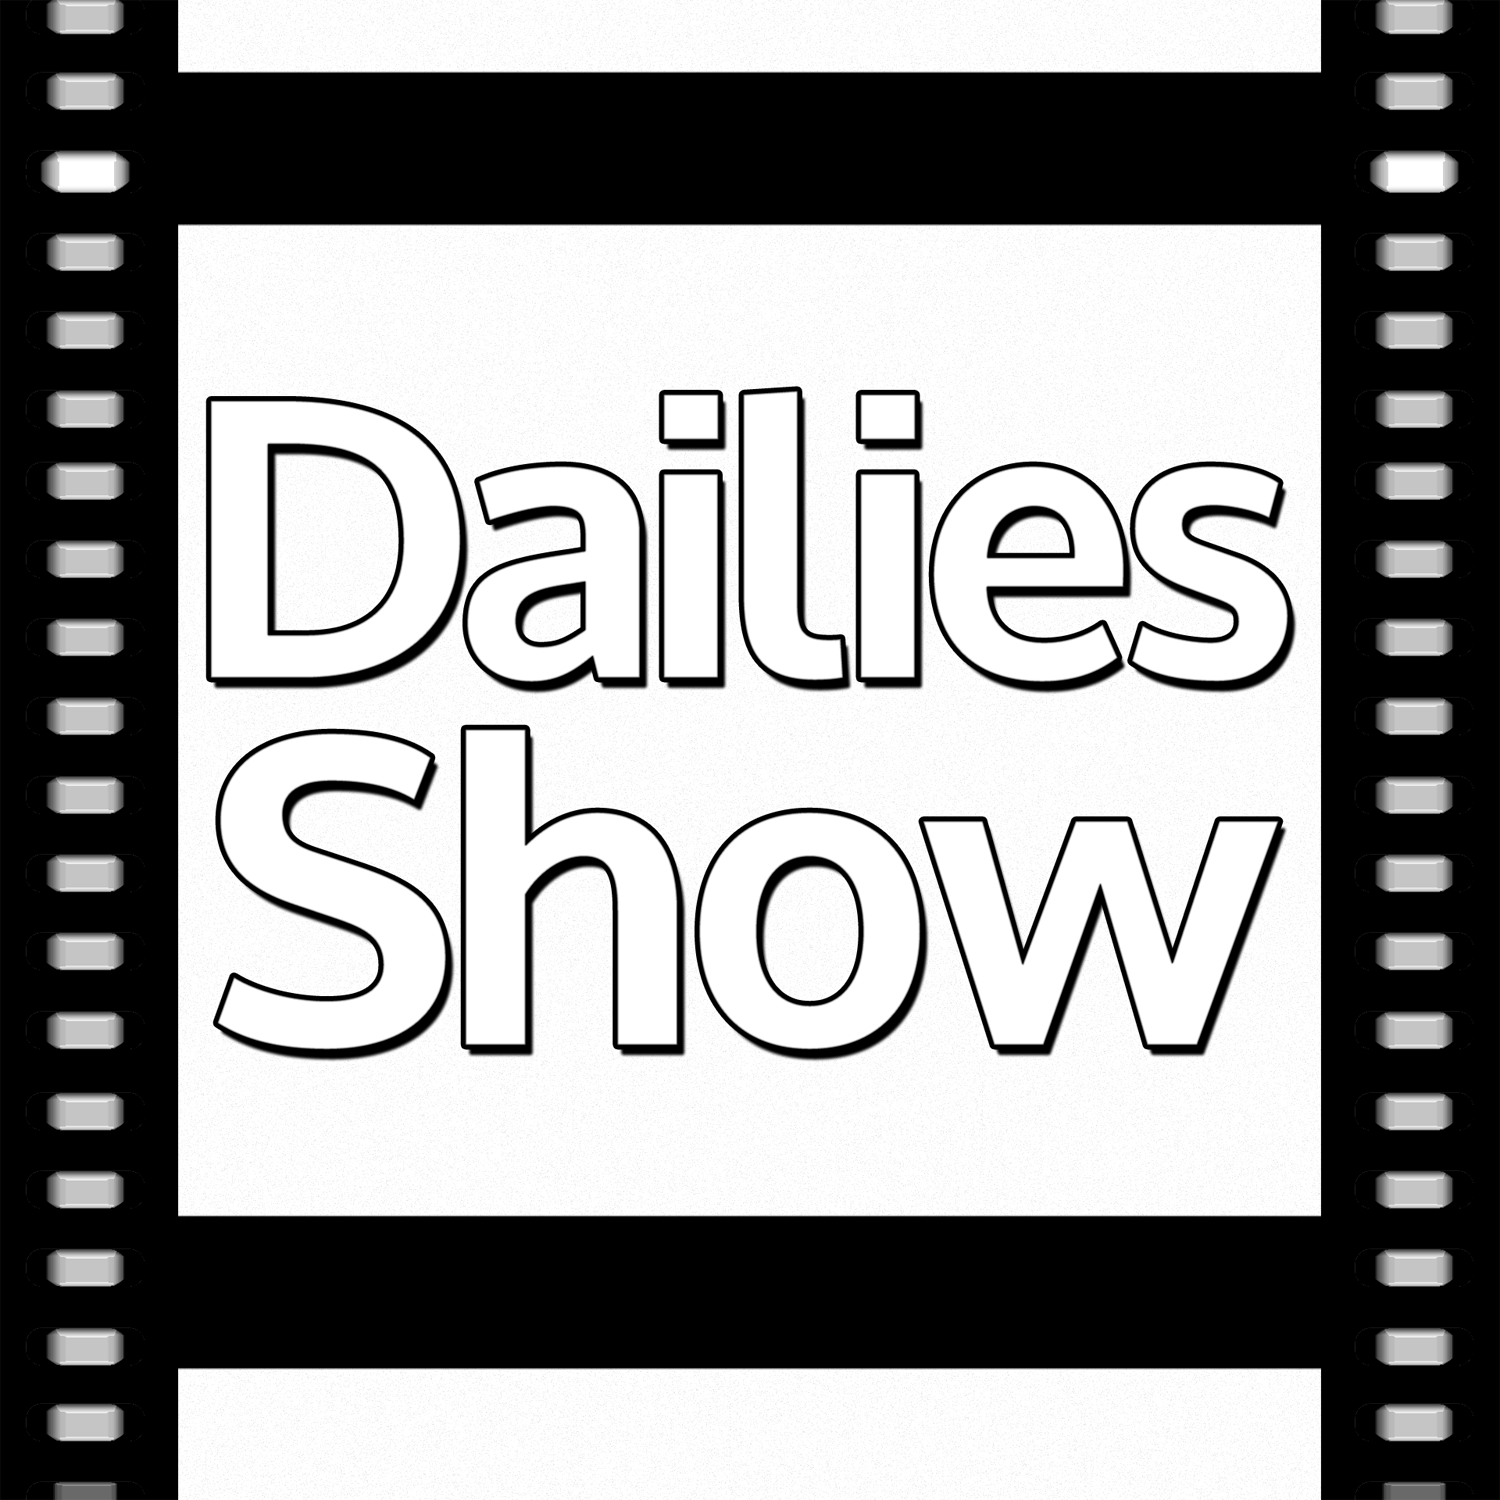 Dailies Show Podcast Episode 2 - September 29, 2017